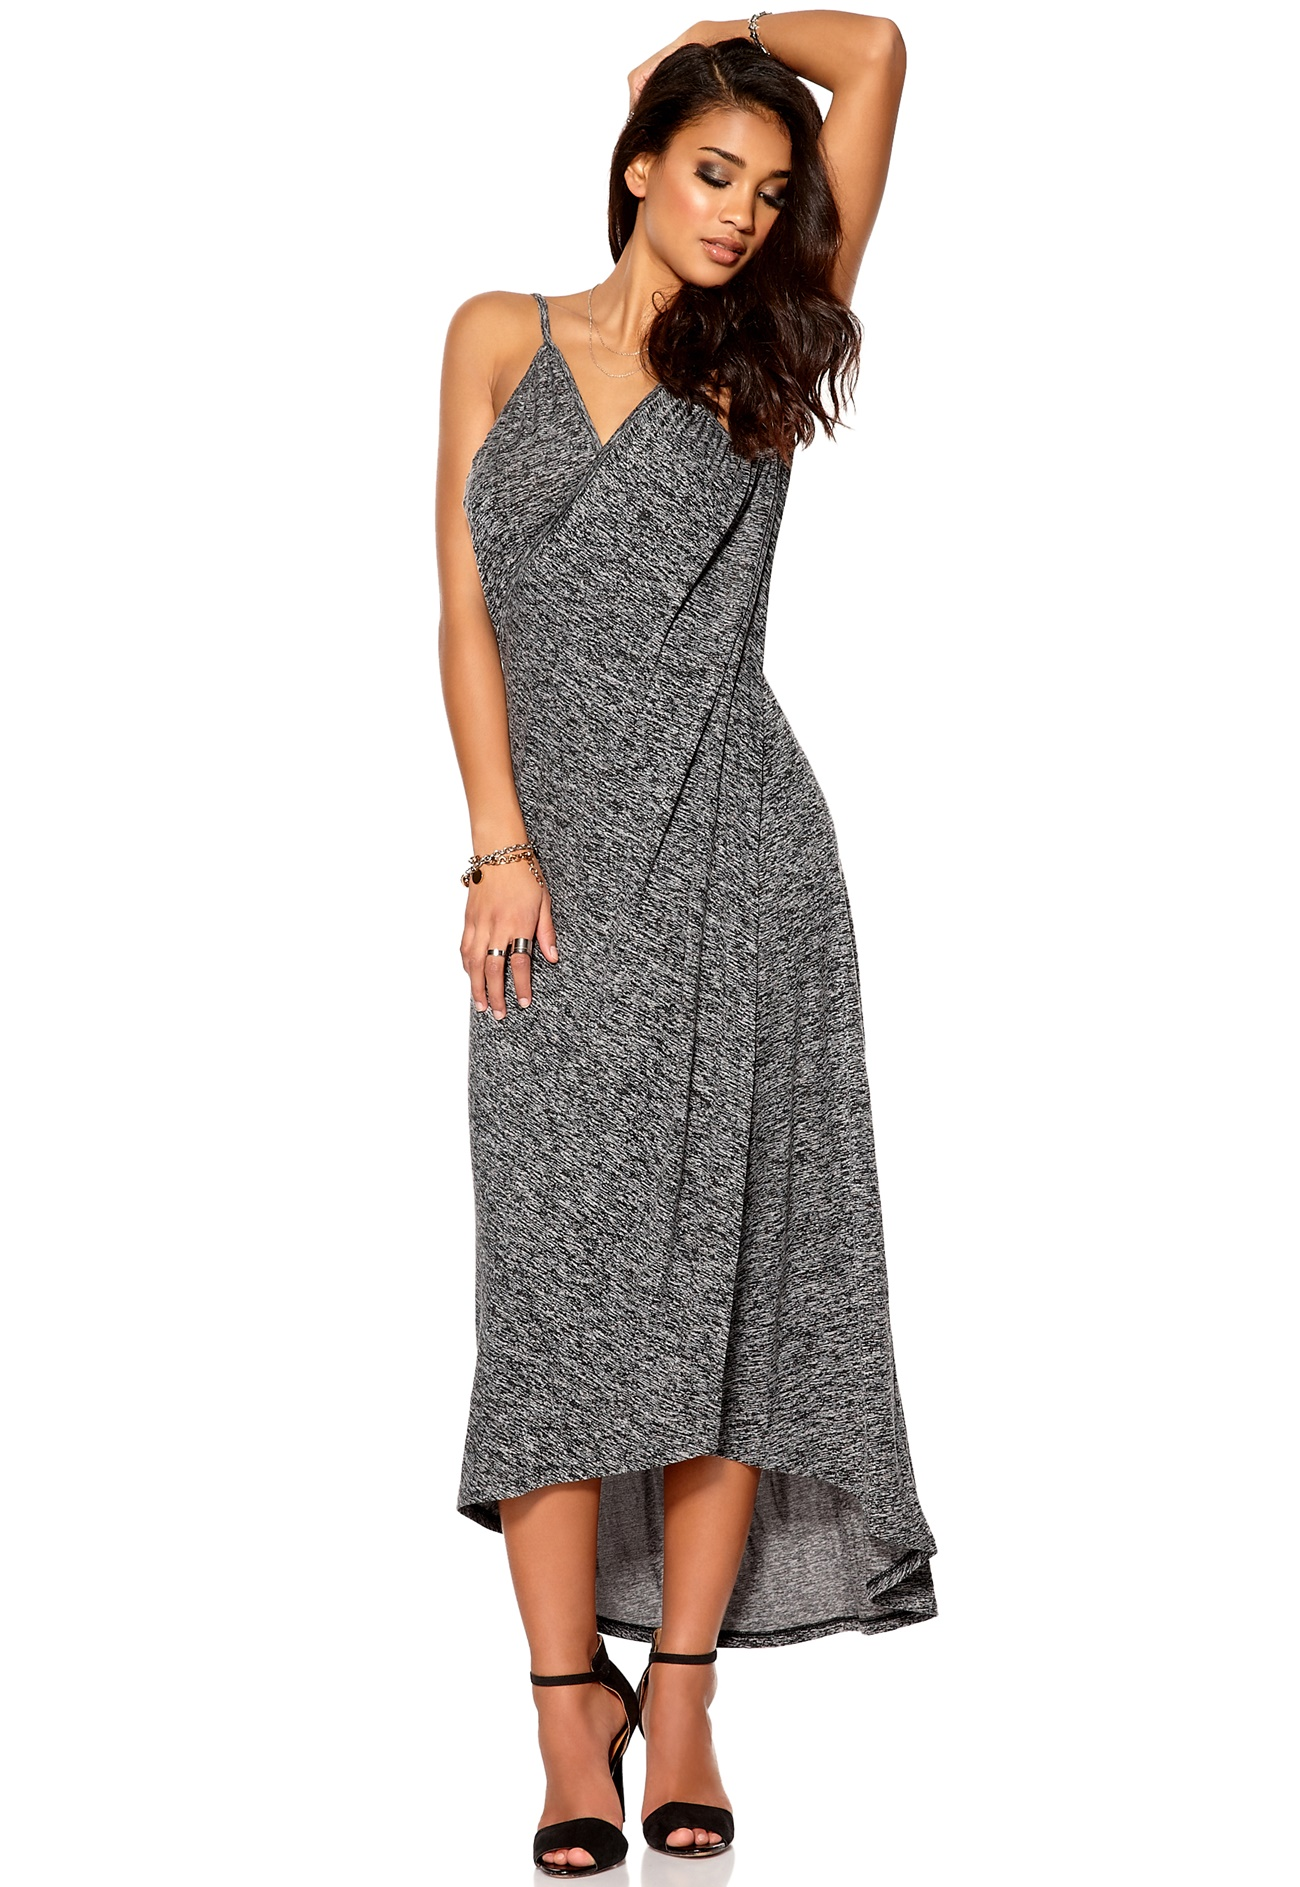 An effortless business dress by BOSS Womenswear, designed in form-fitting melange virgin wool with a touch of stretch. This dress features cropped sleeves, smooth lining, a .